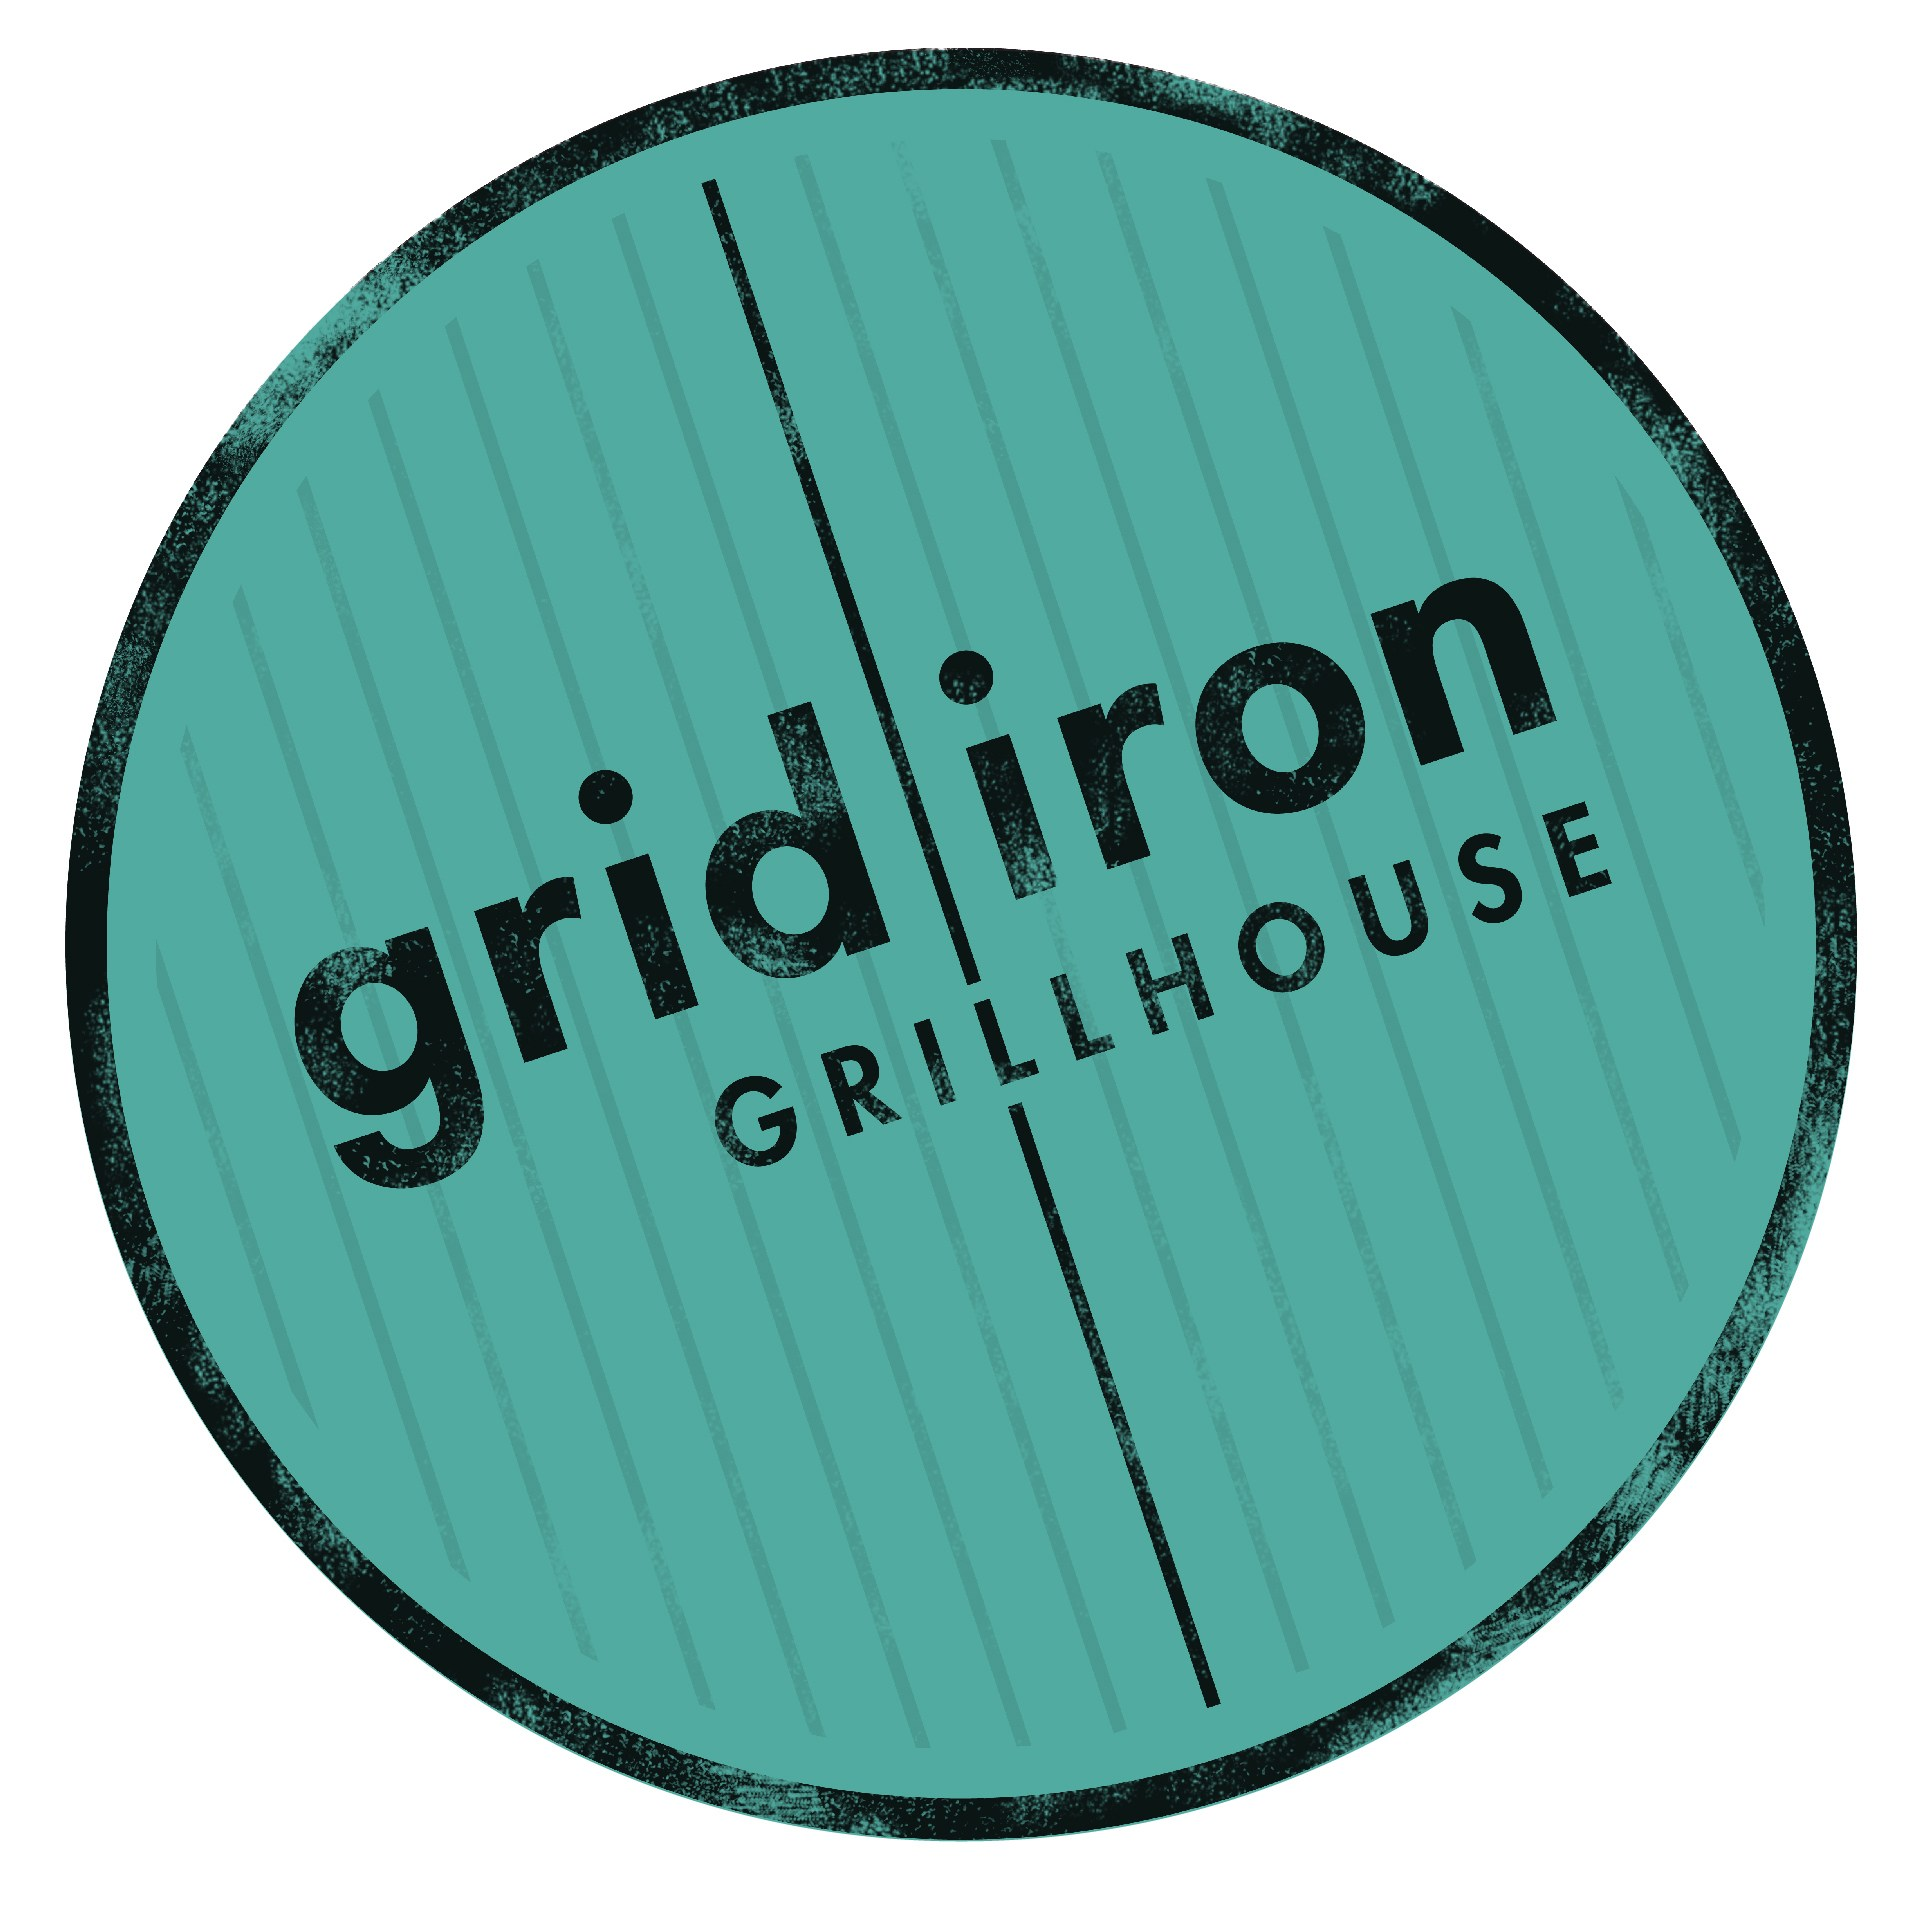 Gridiron grill house